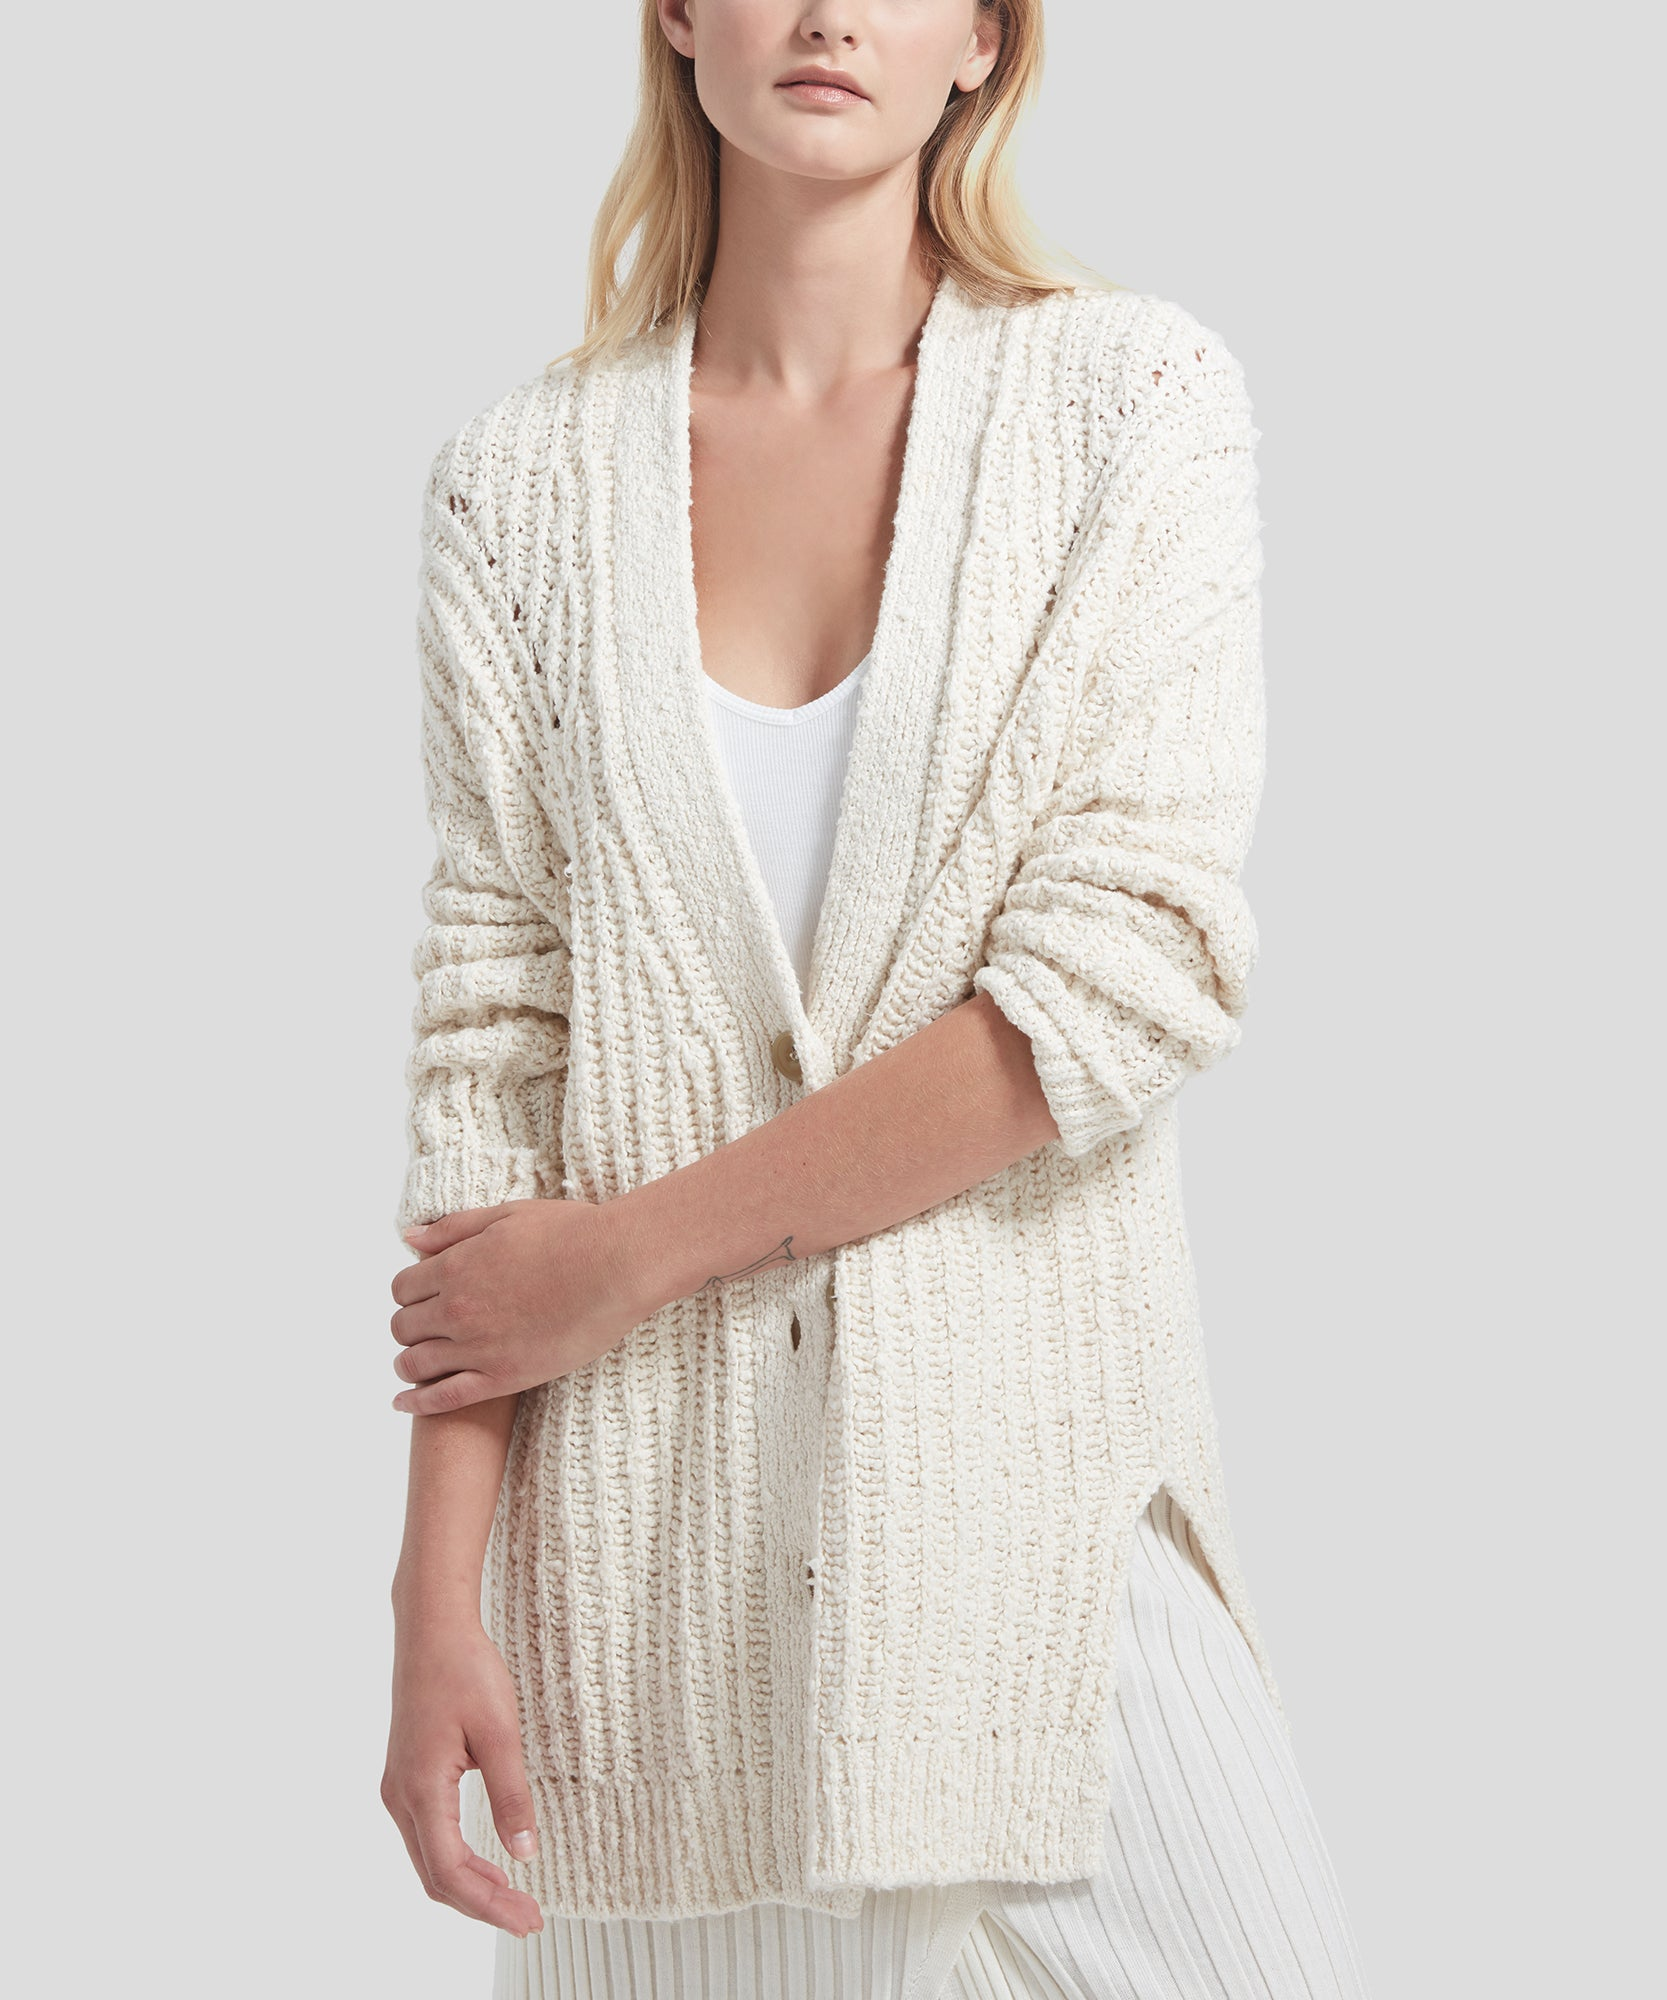 ATM Chunky Knit Grandfather Cardigan